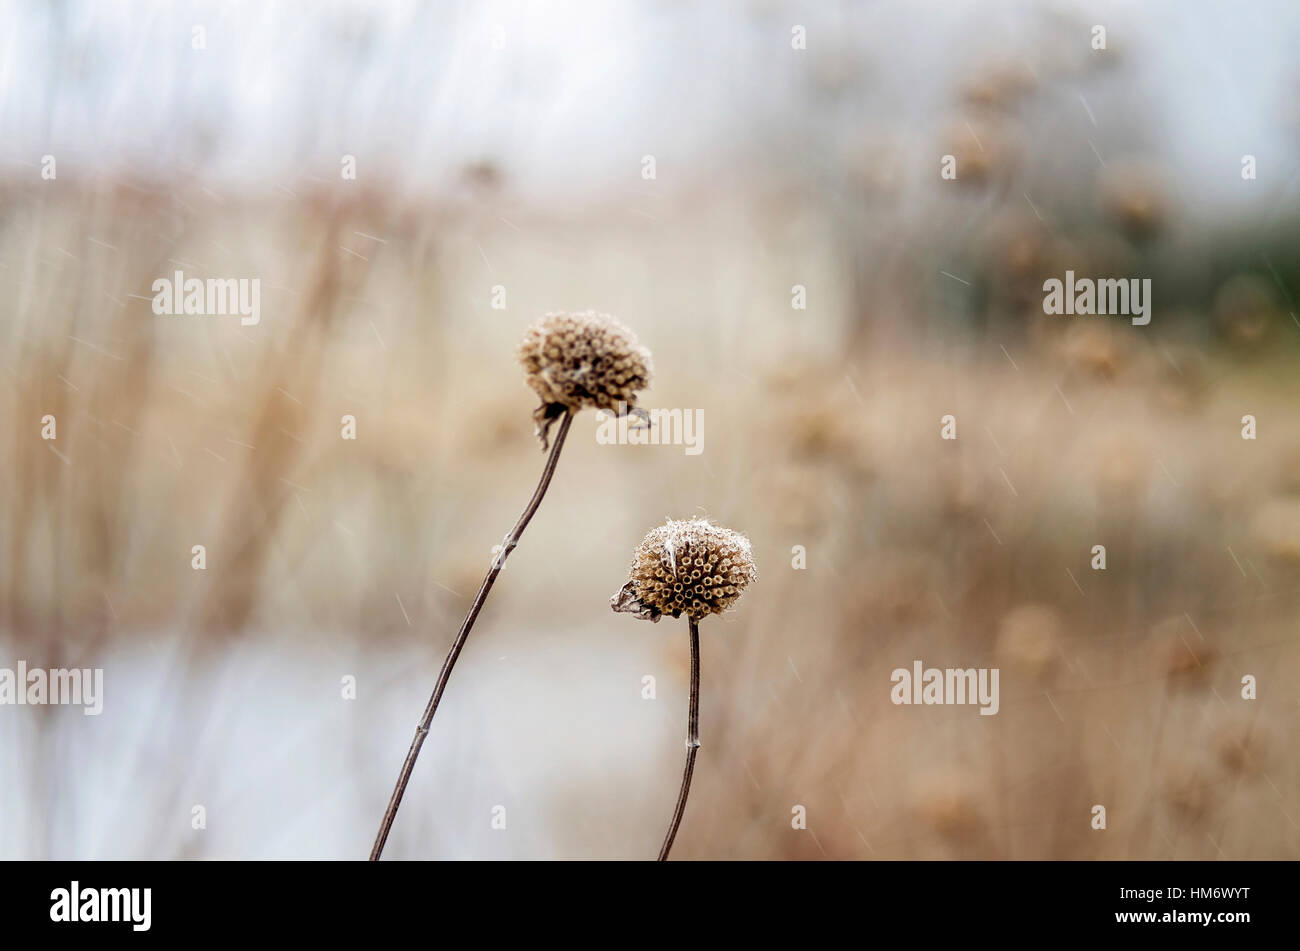 Close-up of dry flowers - Stock Image